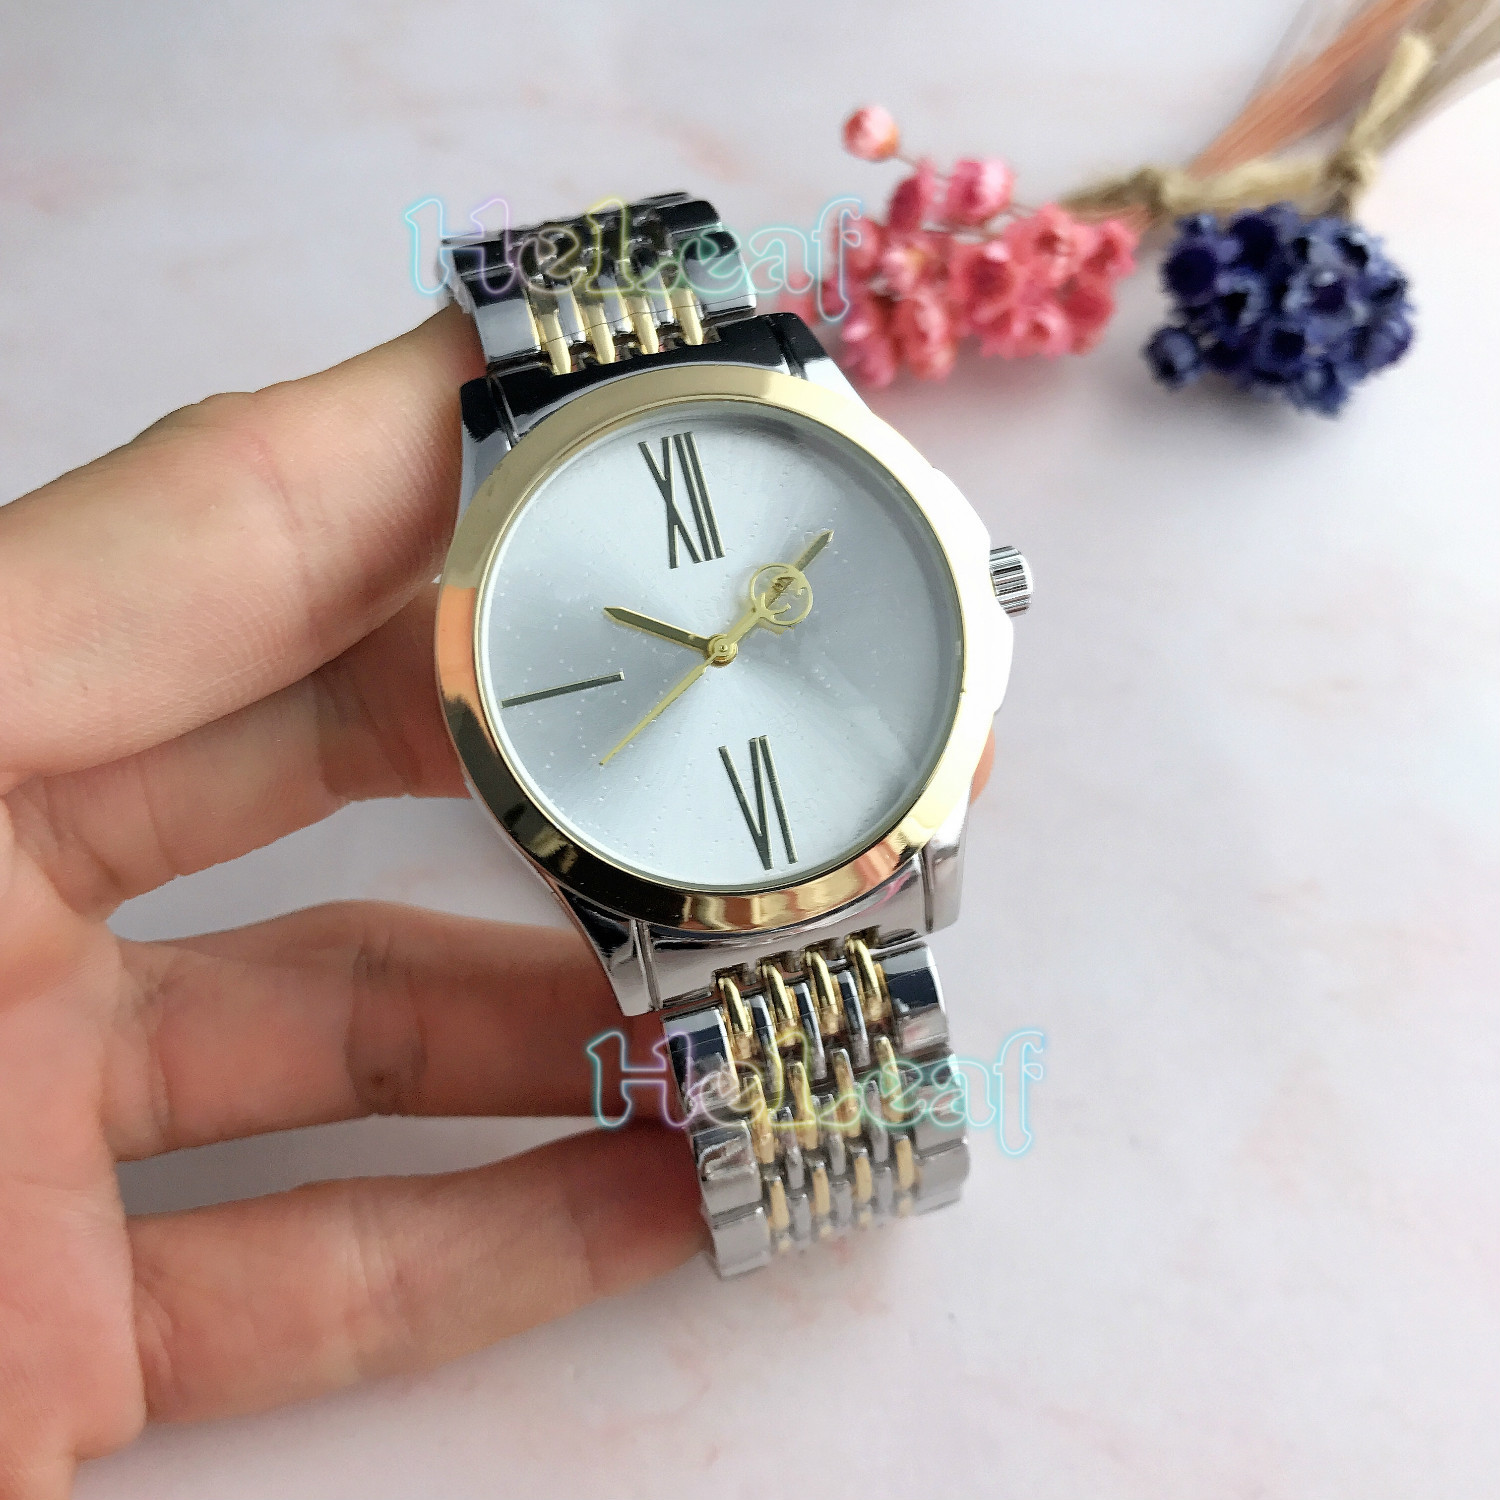 Fashion Brand Women Watches Silver Gold Round Stainless Steel  Gu Band Quartz Watch Female Clock Reloj Mujer Relogios